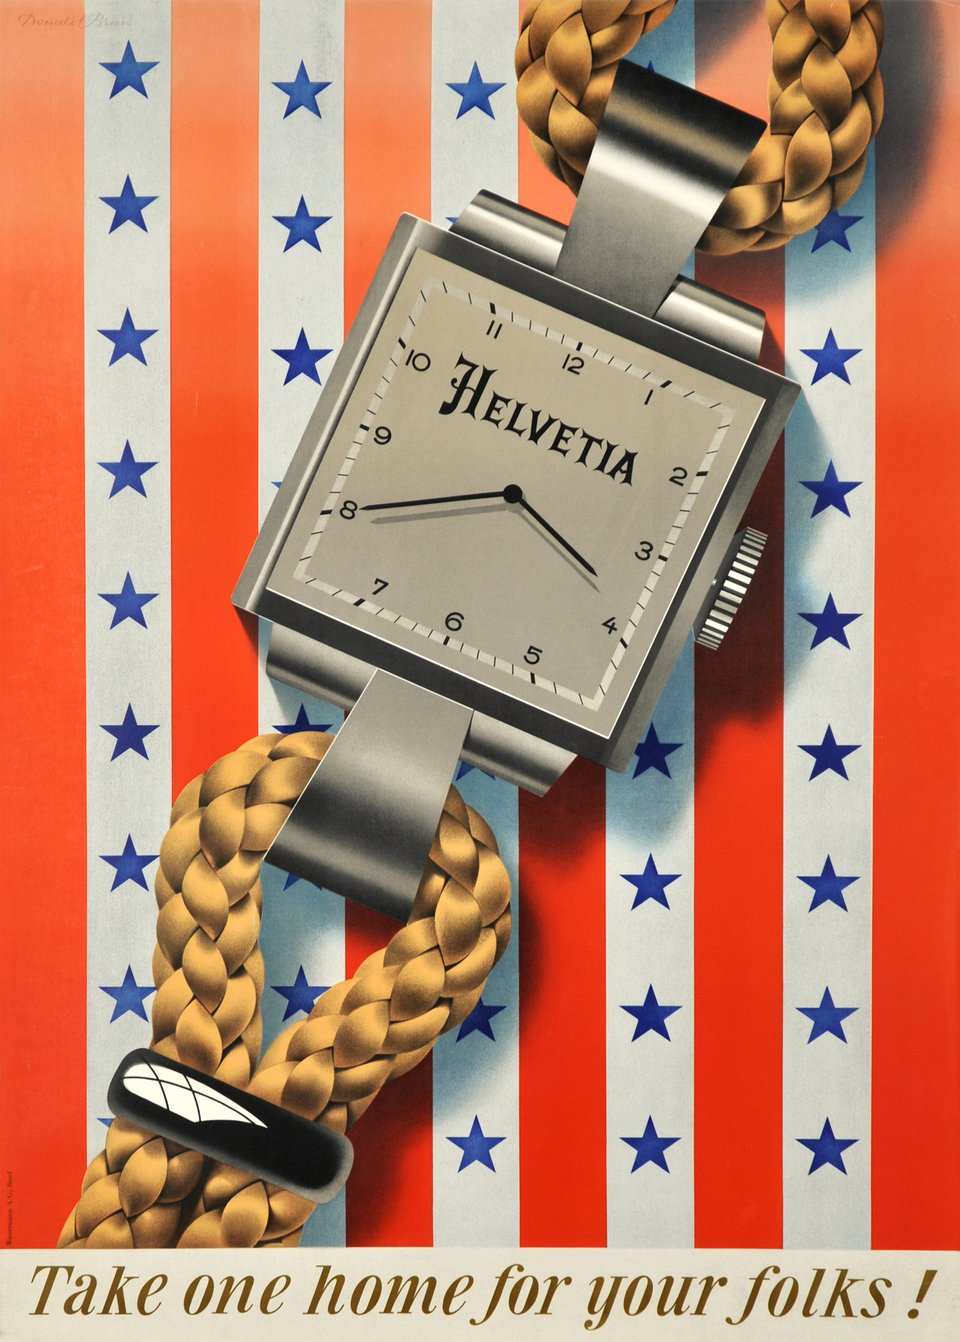 Helvetia watches, take one home for your folks – Vintage poster – Donald BRUN – 1946